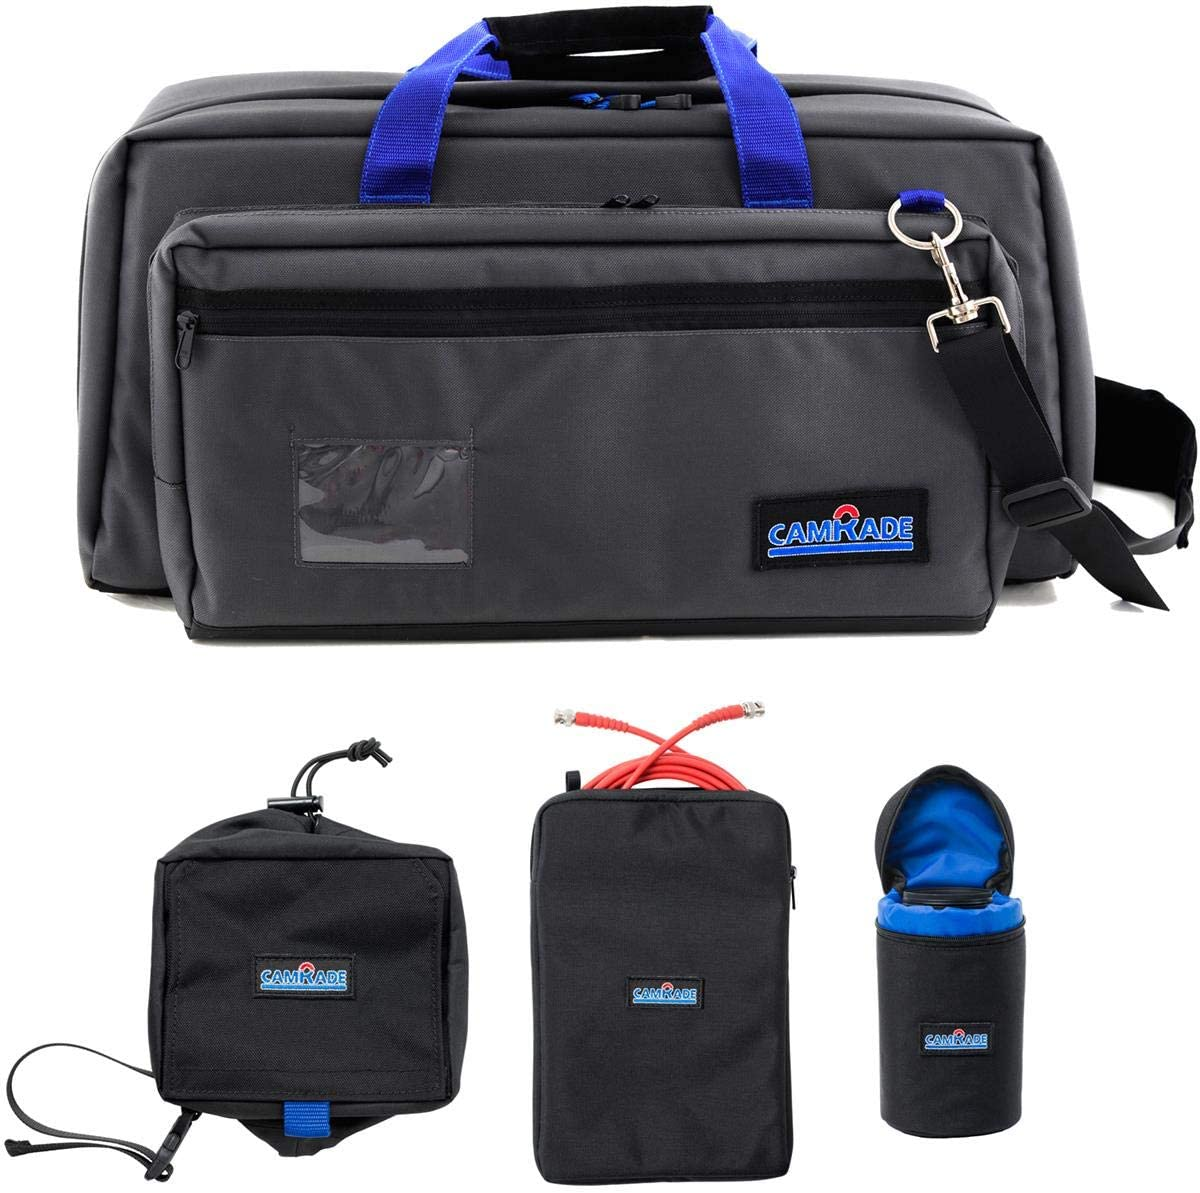 CamRade Transporter Large Case for Up to 20.5